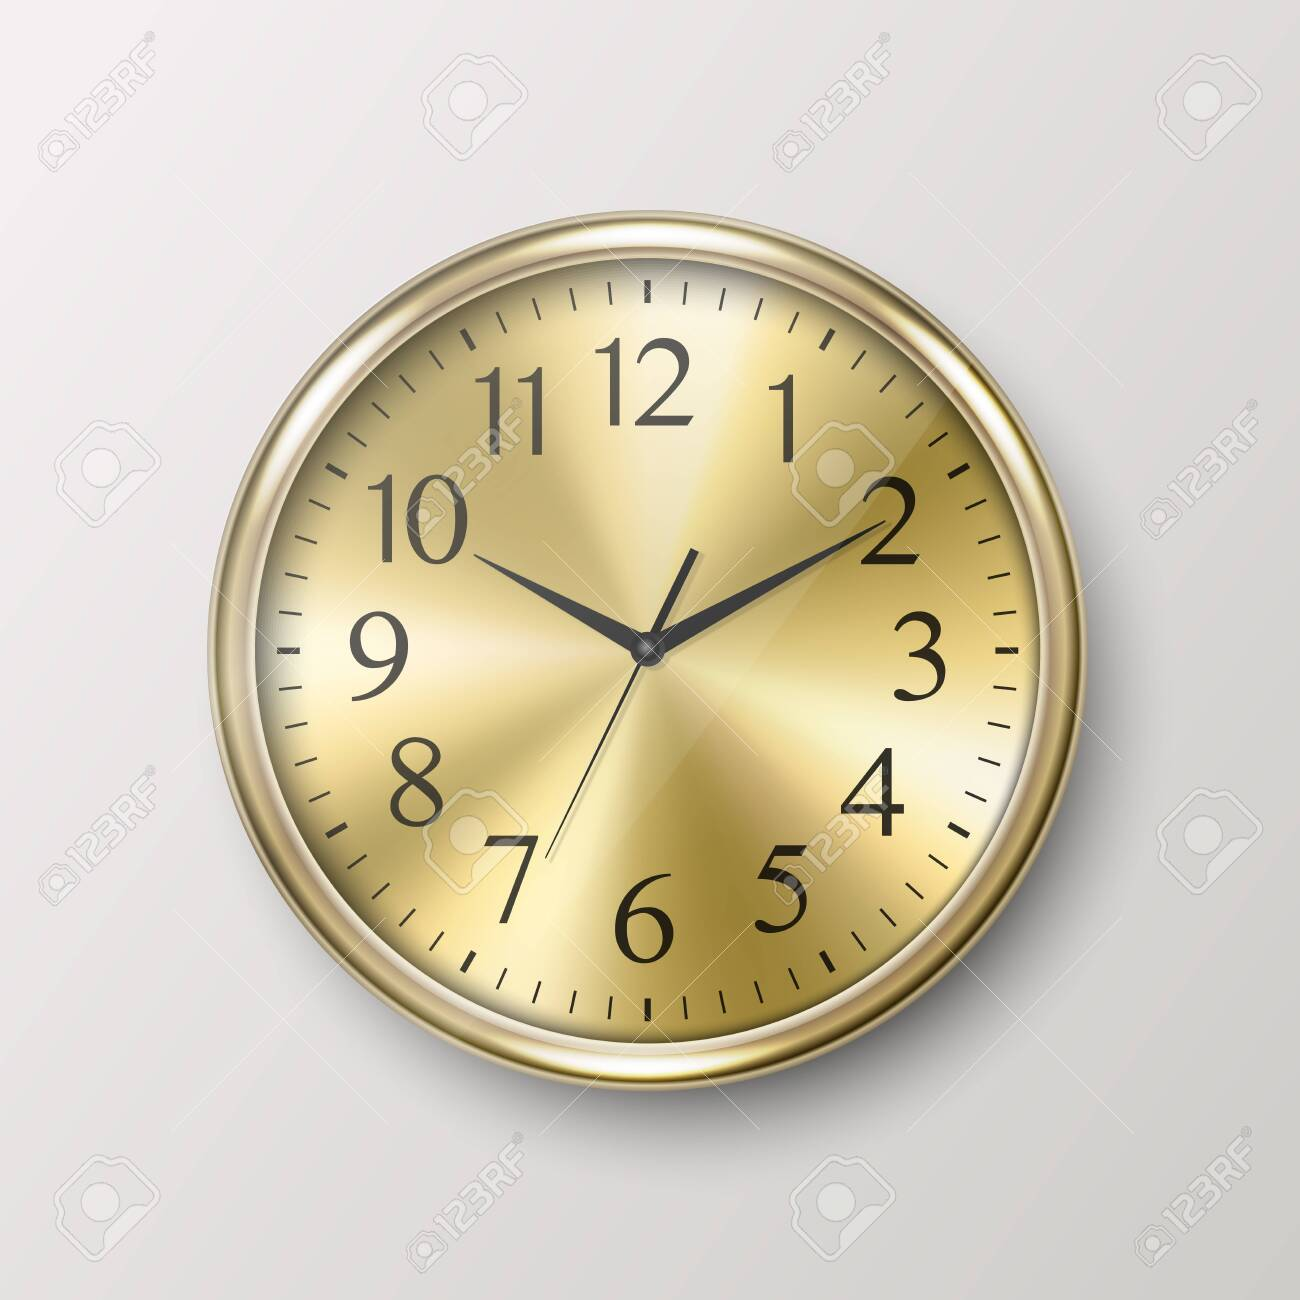 Vector 3d Realistic Simple Round Golden Wall Office Clock Icon Closeup Isolated on White Background. Design Template, Mock-up for Branding, Advertise. Front or Top View - 151114492